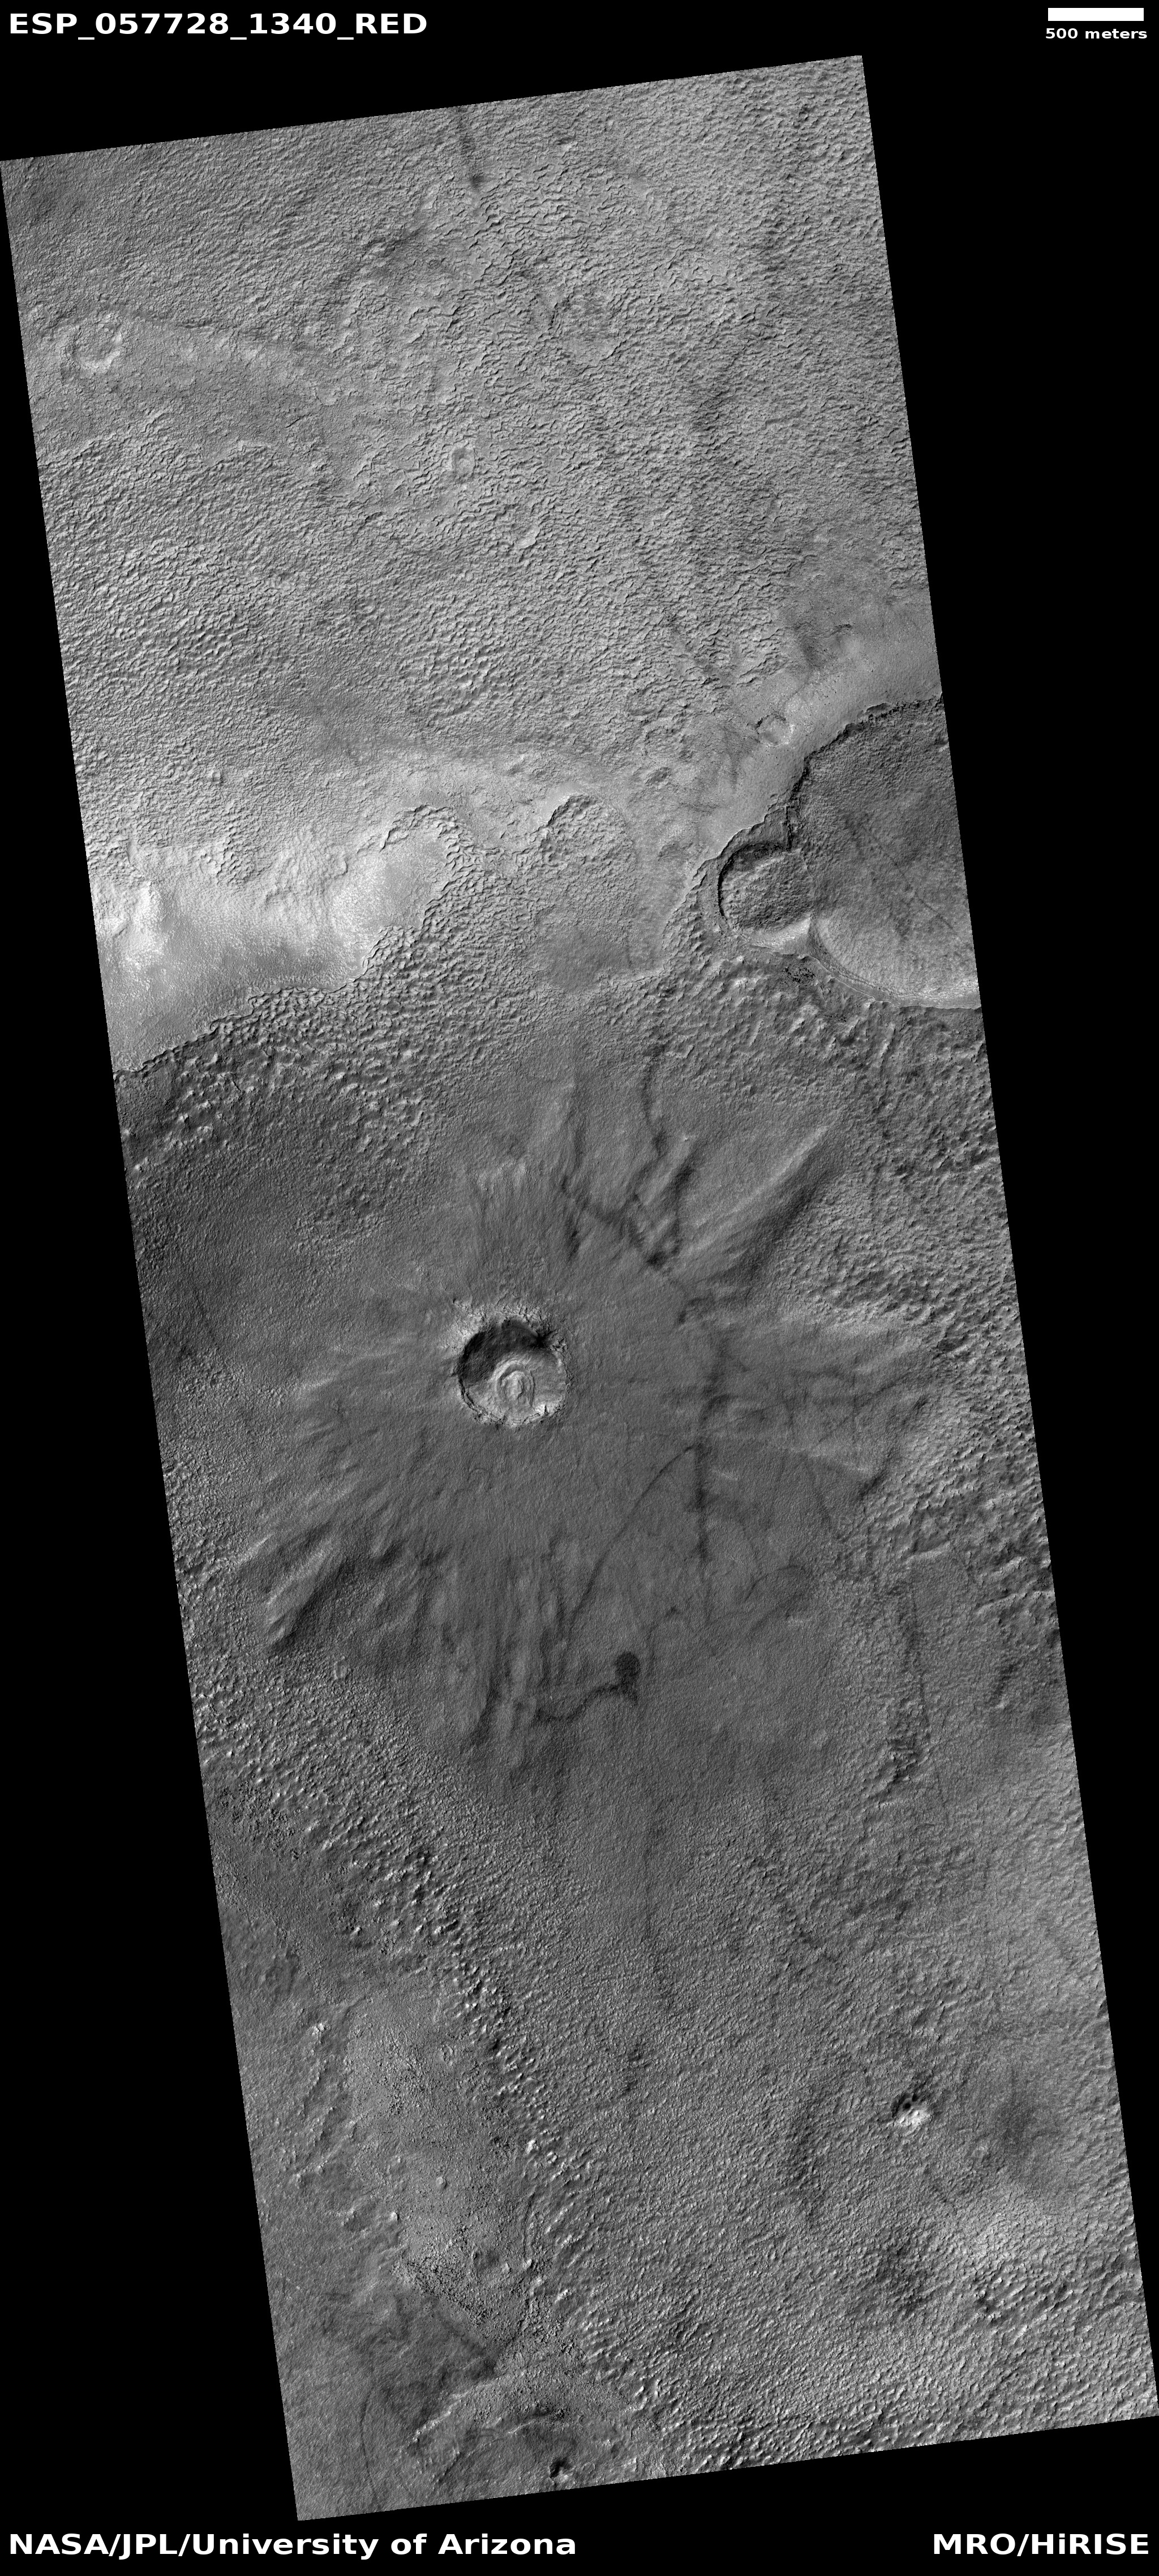 Crater and dust devil tracks